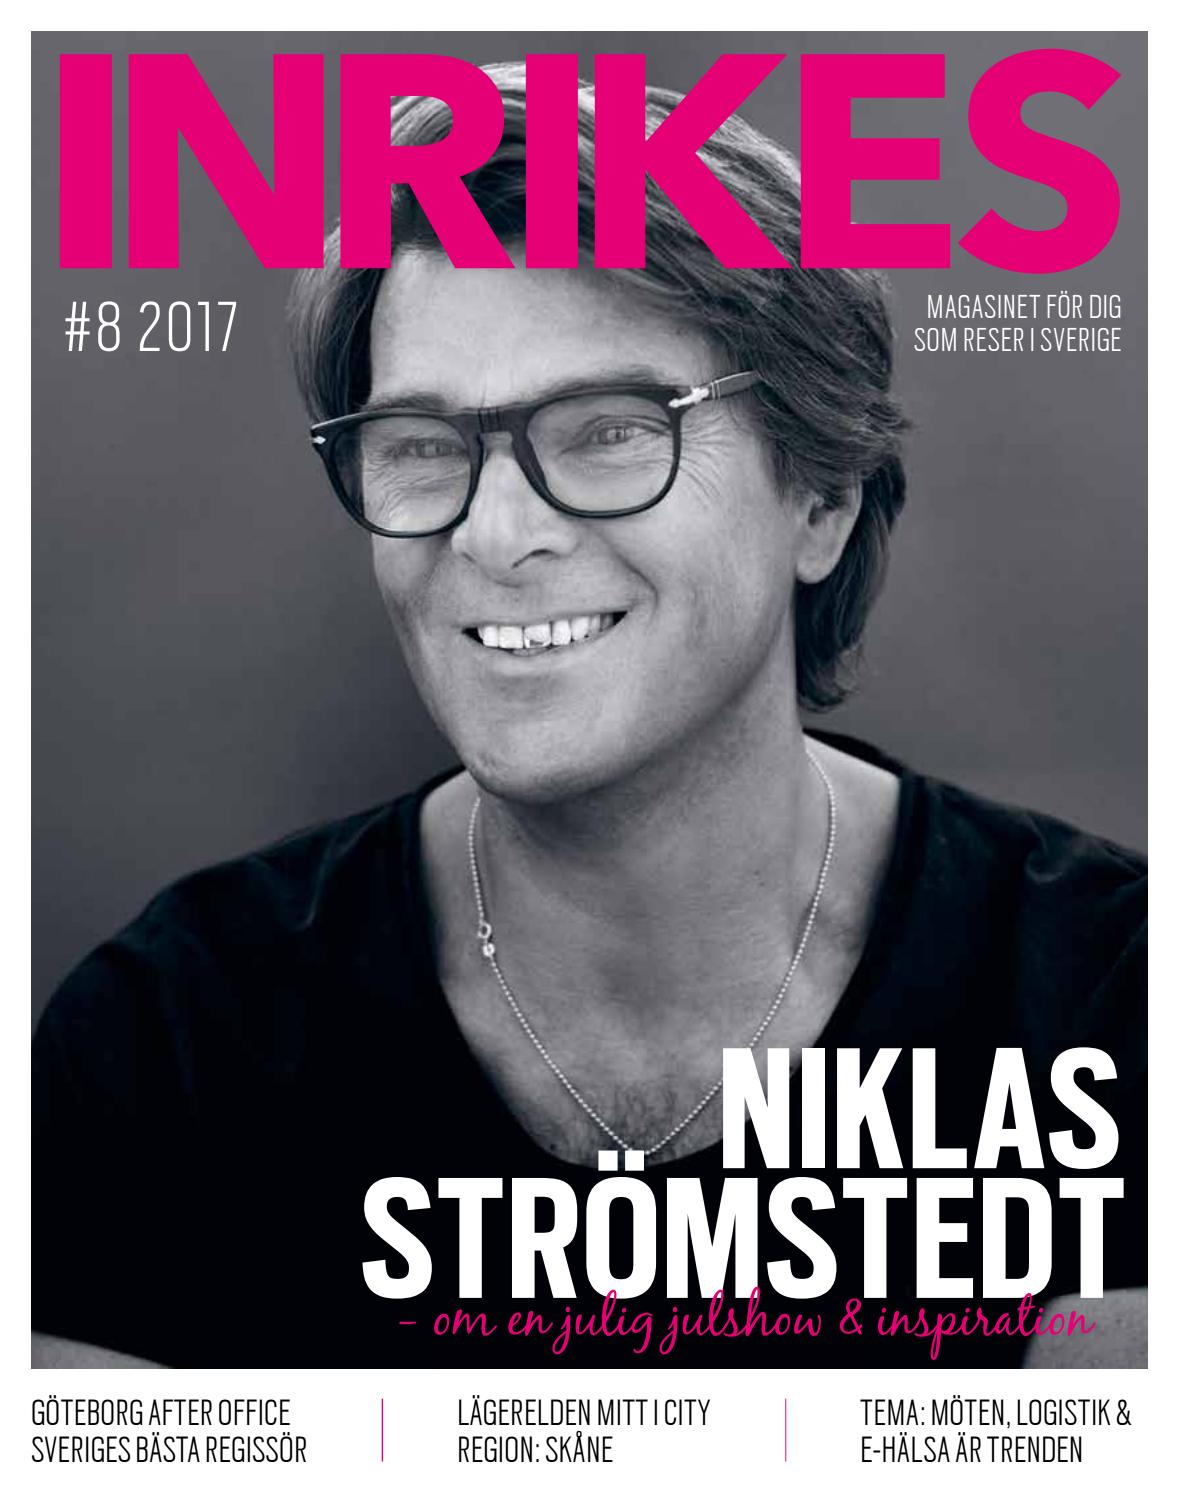 Inrikes 8 2017 by INRIKES Magasin - issuu 3e1634726e8a1